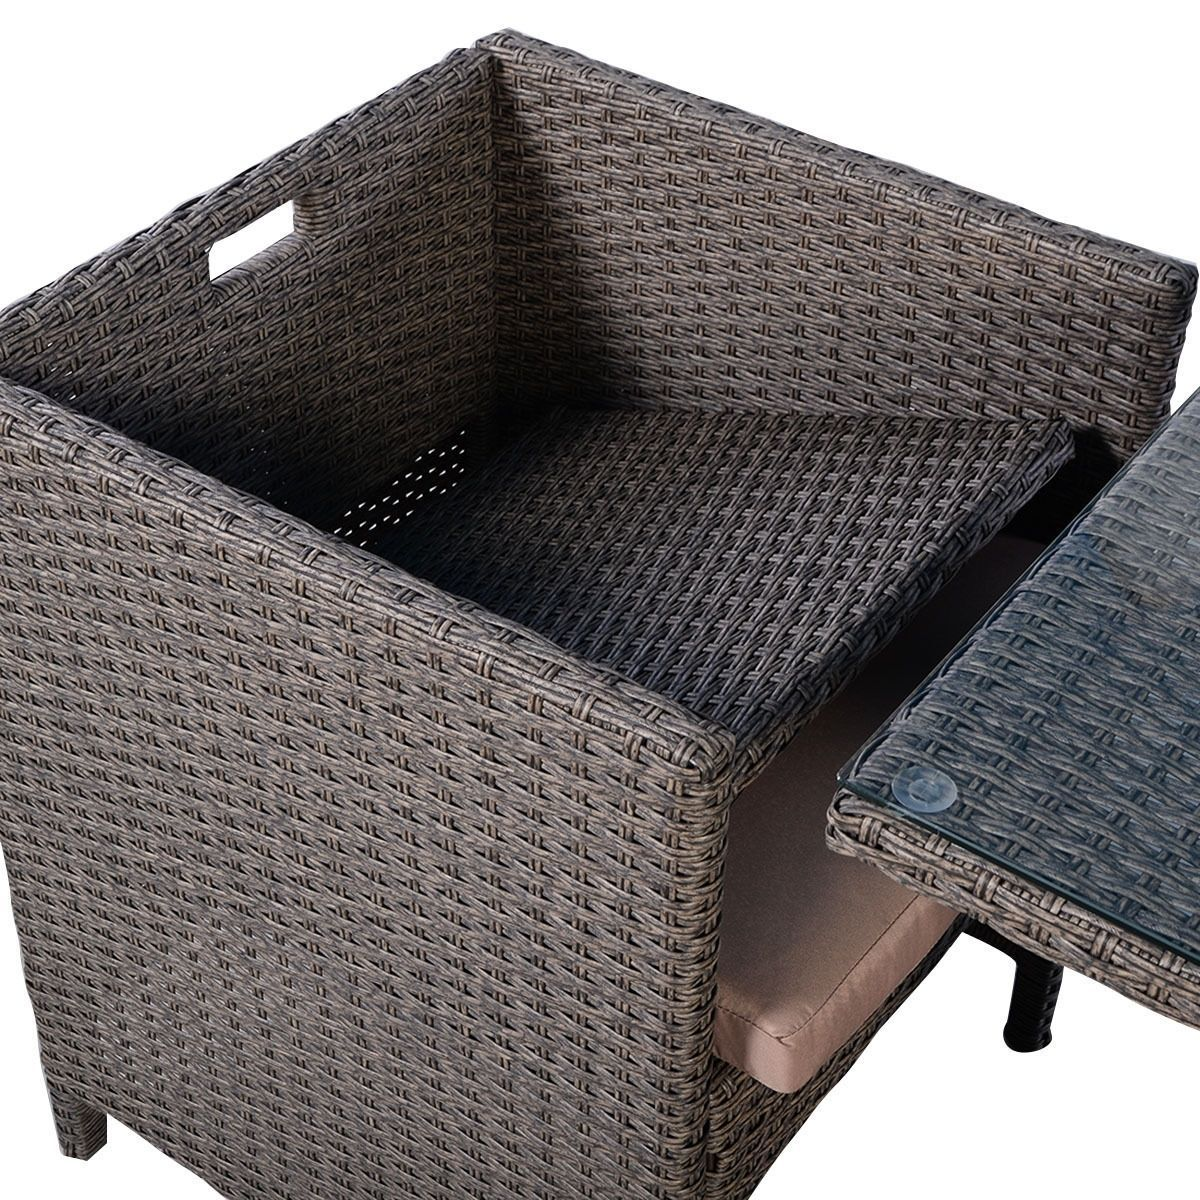 Garden Rattan Set 3pcs Table Chairs Cushioned Outdoor Patio Small Dining Set  image 5